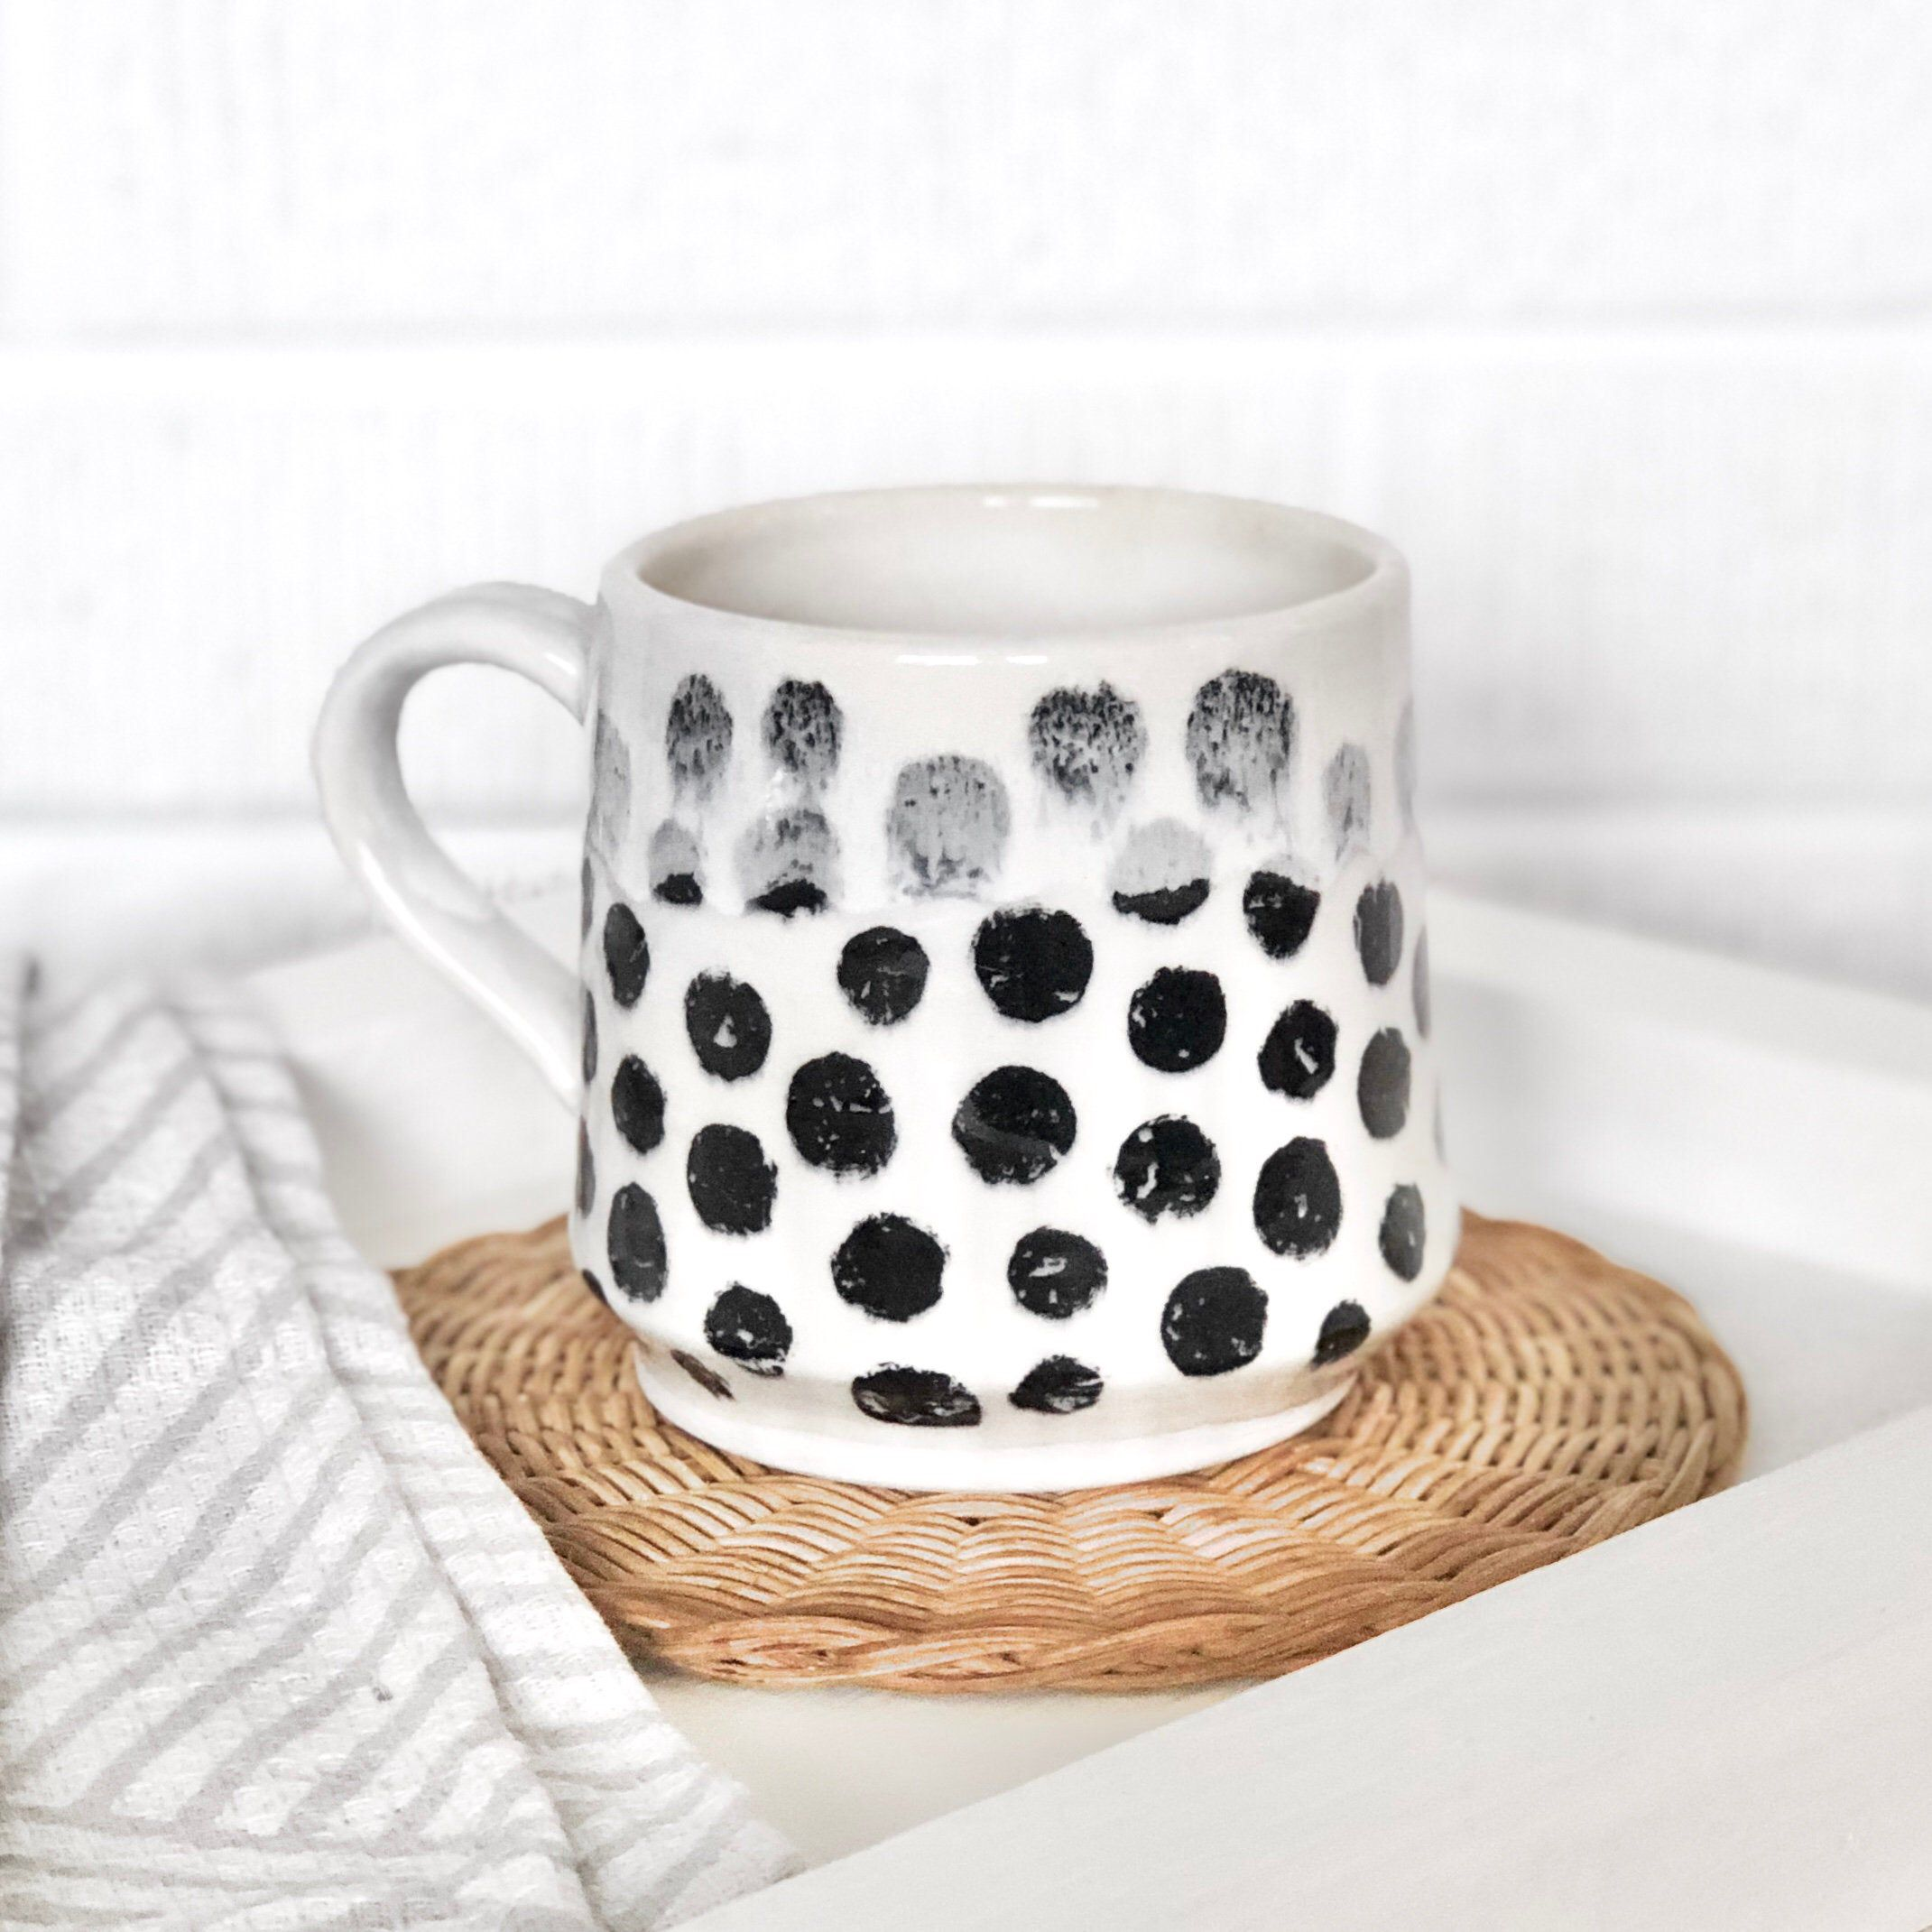 Excited to share the latest addition to my shop: Polka Dot Mug.  .  #andersonfarmspottery #ceramic  #pottery #ceramics #functionalpottery #functionalceramics #handmadewares #potterofinstagram #contemporaryceramics #instapottery #clayart #craftmovement #handmadeceramics #makersgonnamake